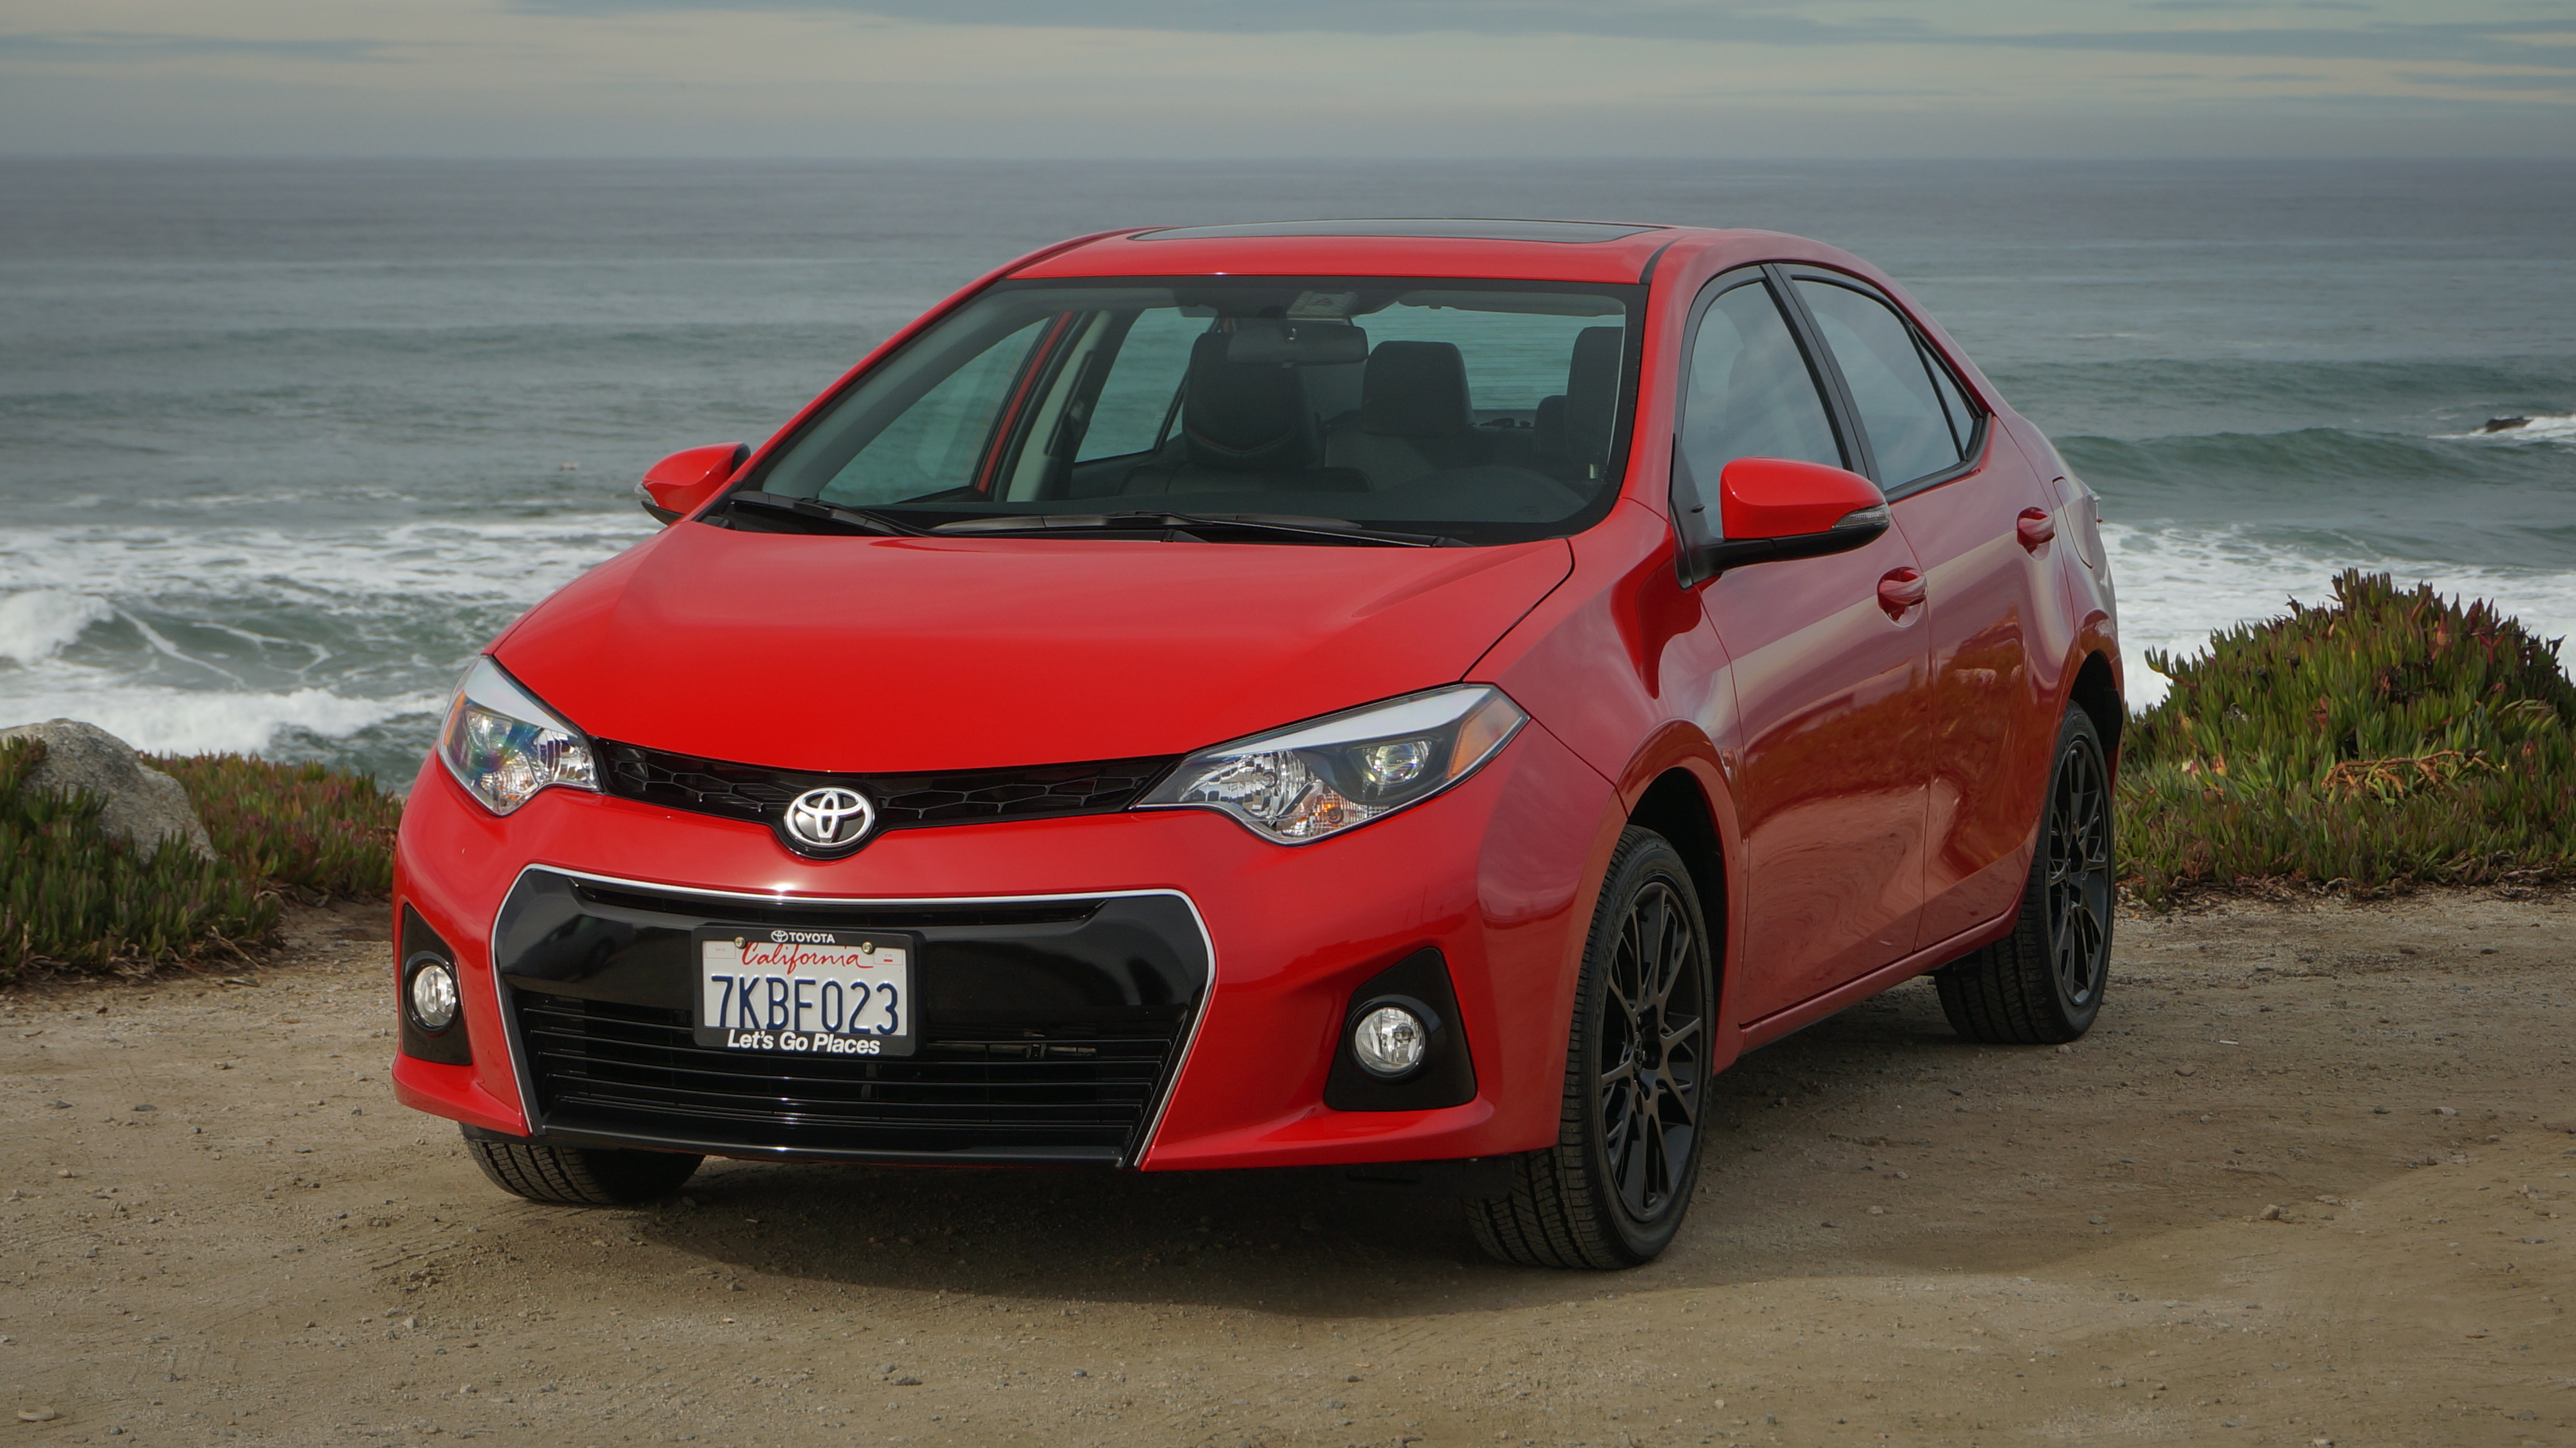 Amazing 2016 Toyota Corolla S Review It Looks Angry But This Economy Compact